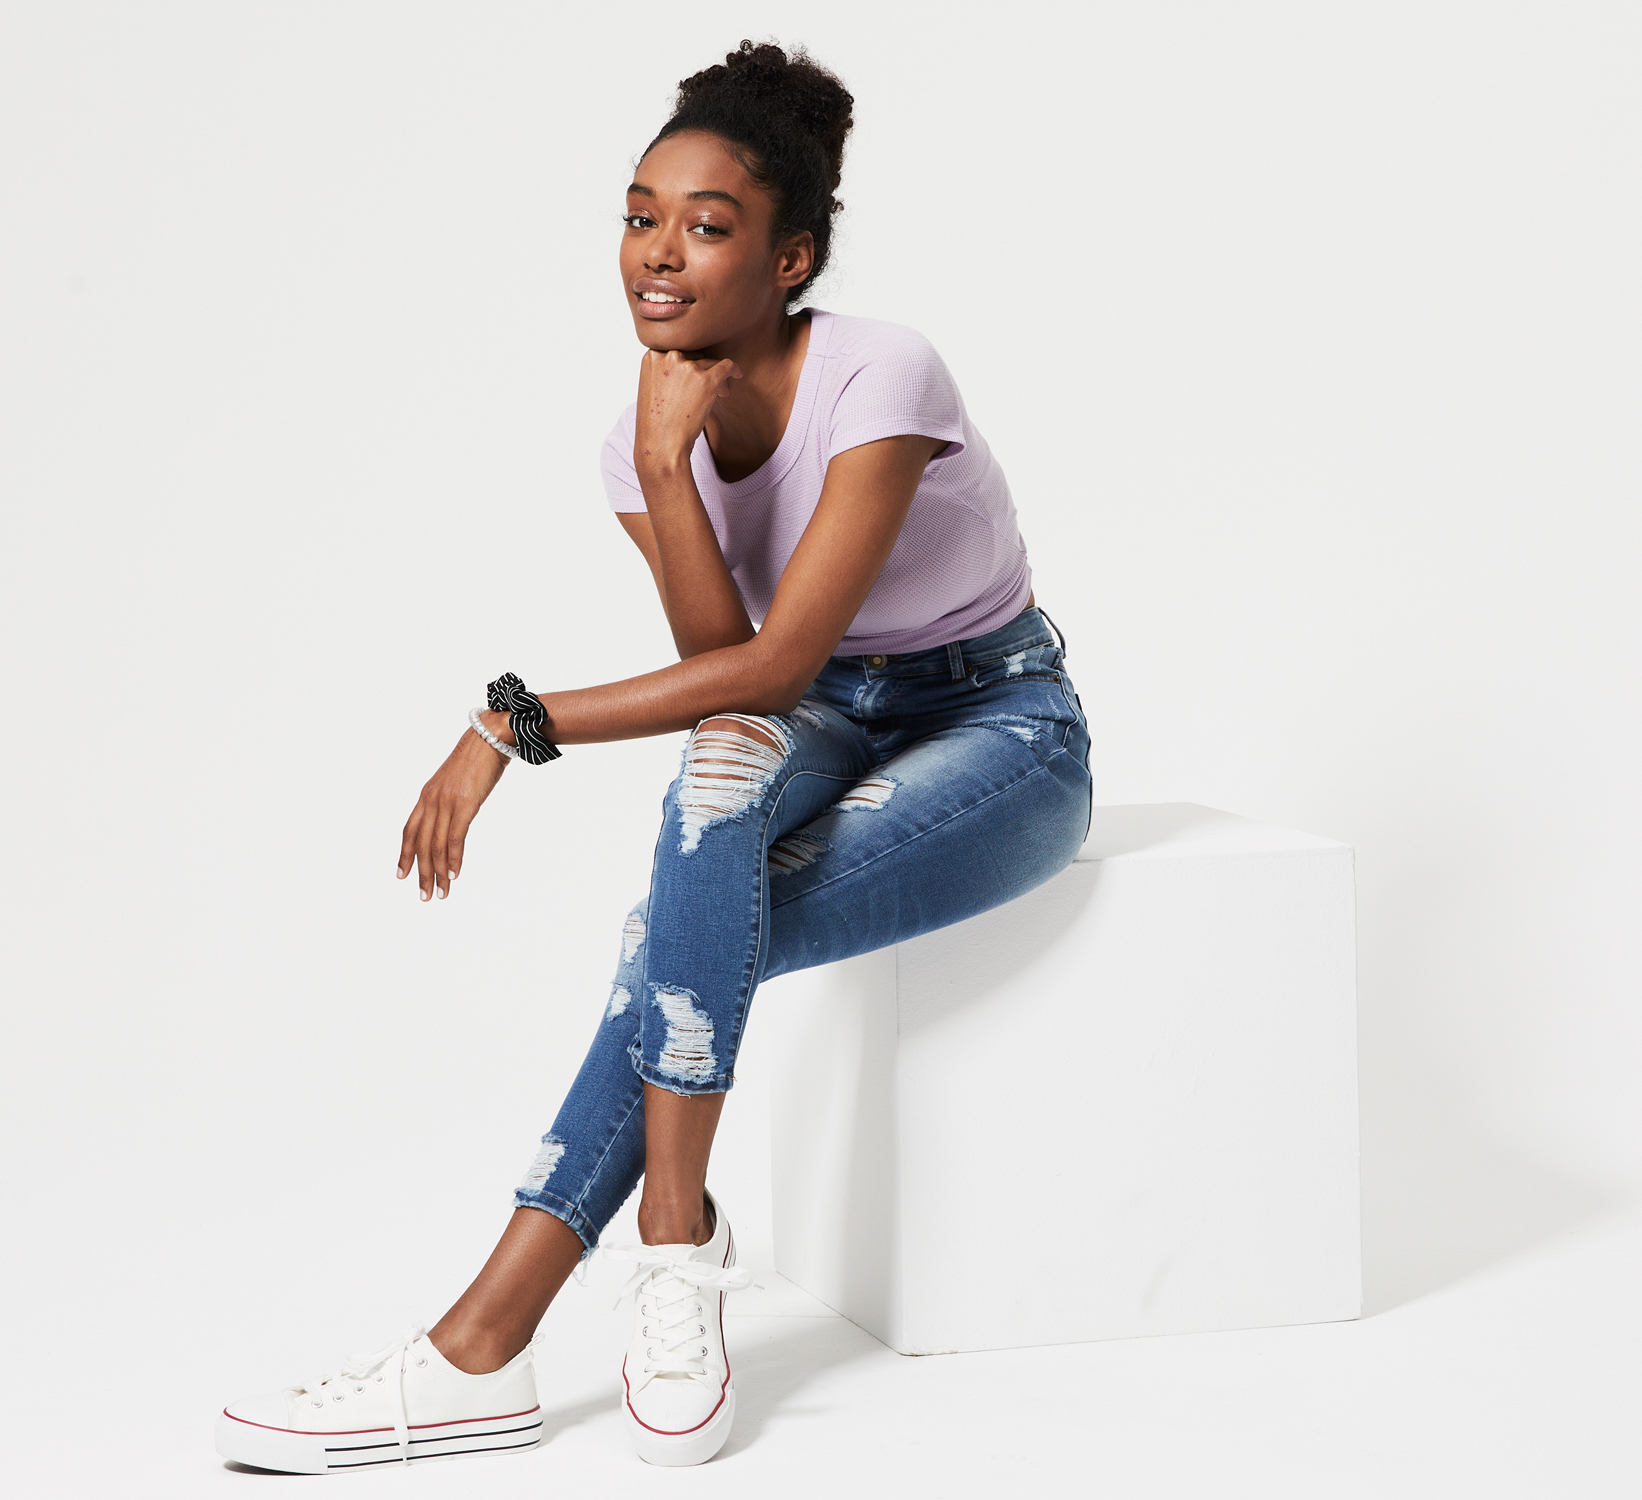 rue 21 BTS Campaign 2019 by Two Eye Monkey